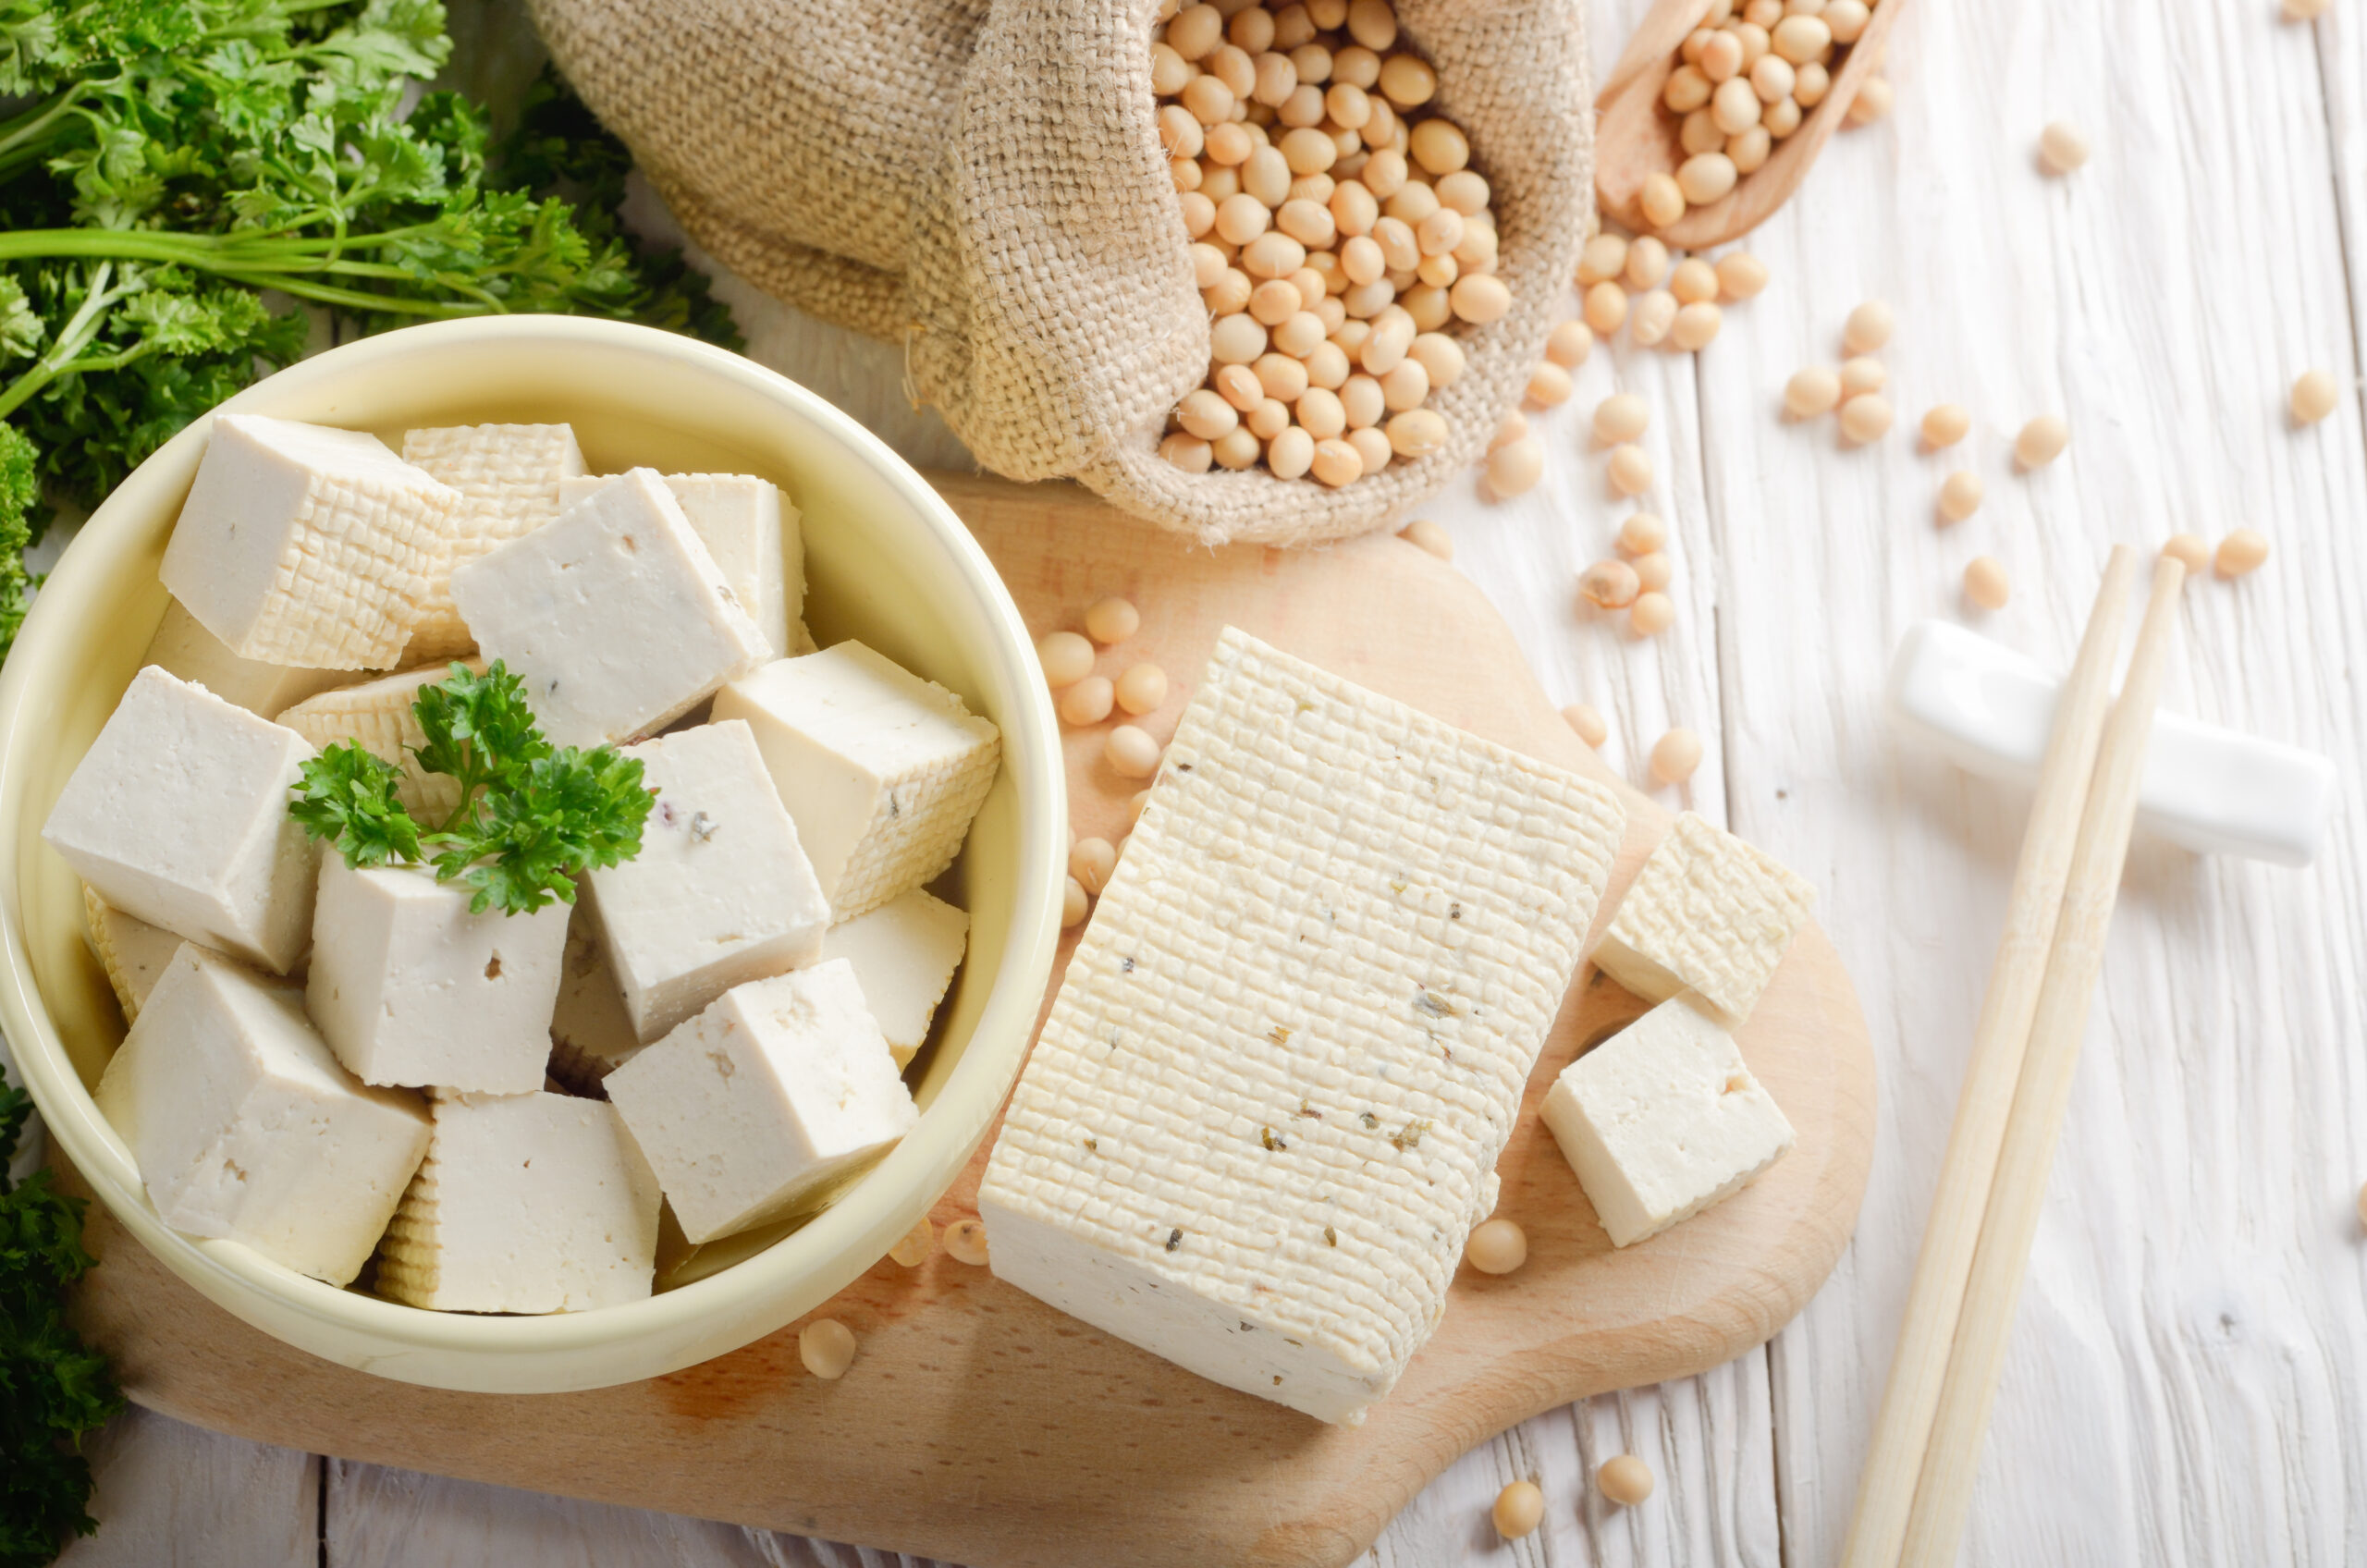 How to feed tofu to kids is a common question when families switch to a predominantly plant-based diet. Here are some ideas for introducing tofu to kids, plus the benefits of incorporating it into their diet.